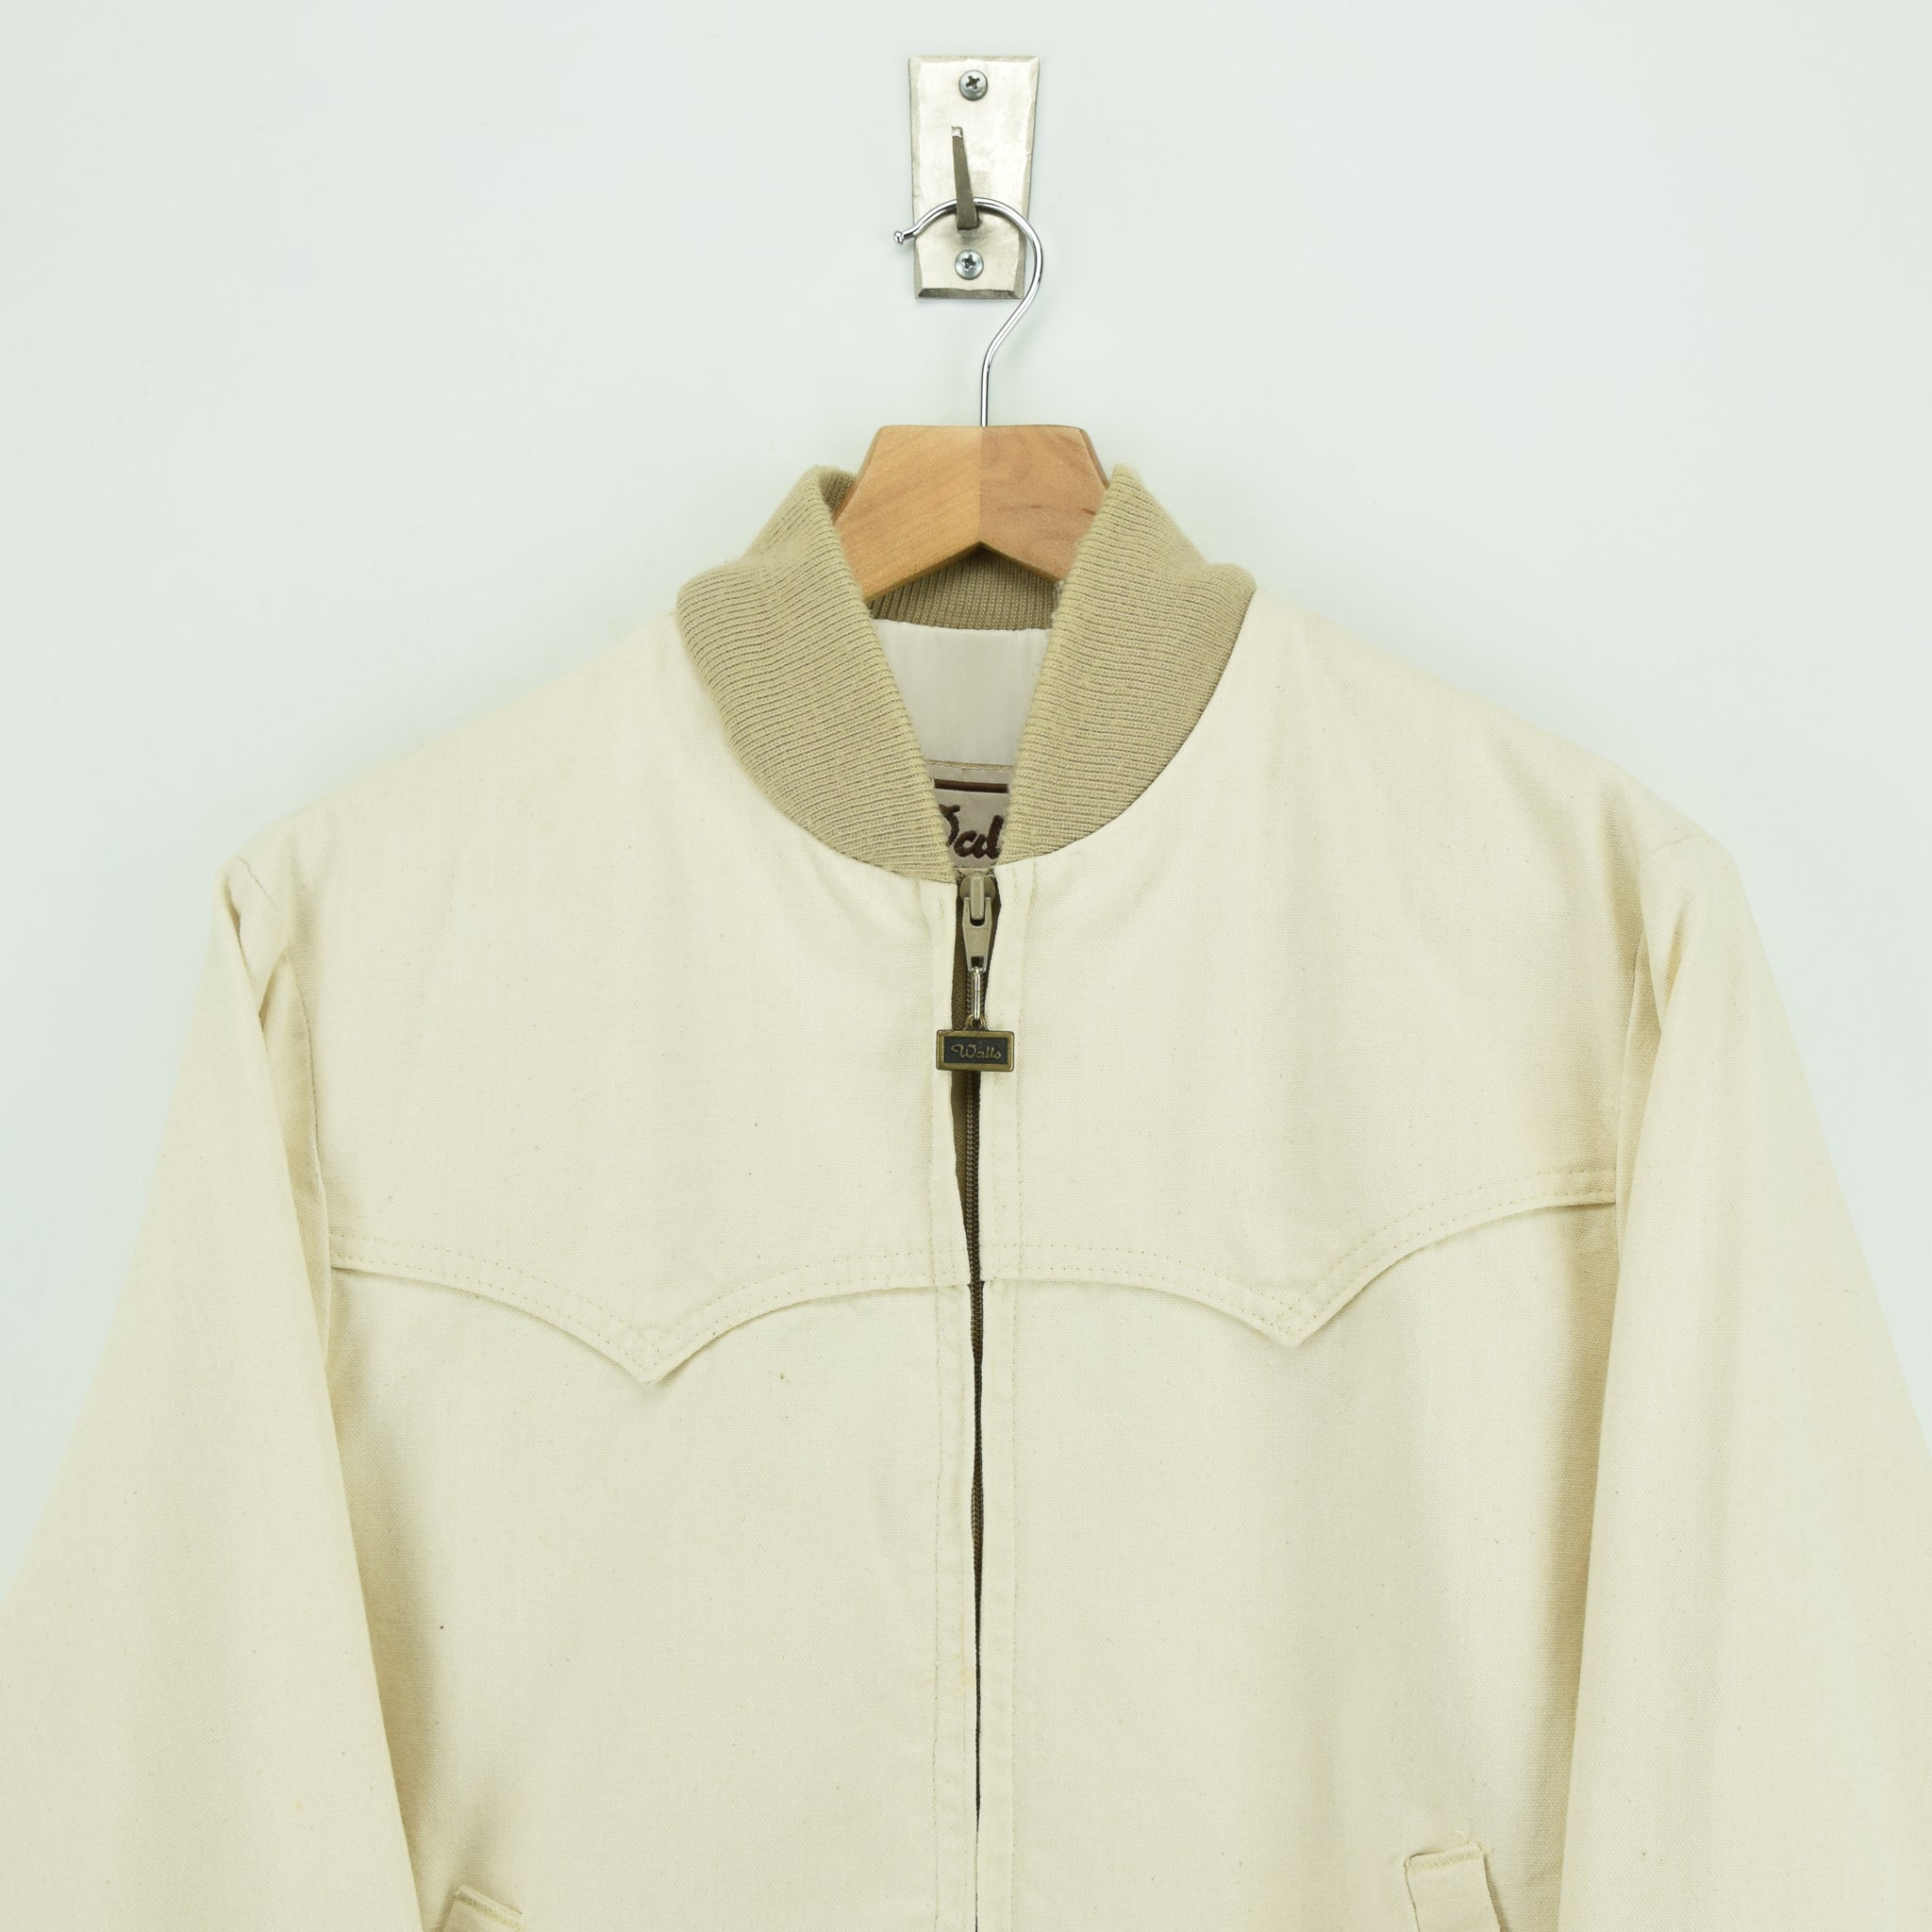 Vintage Walls Western Style Off White Cotton Canvas Bomber Jacket M chest